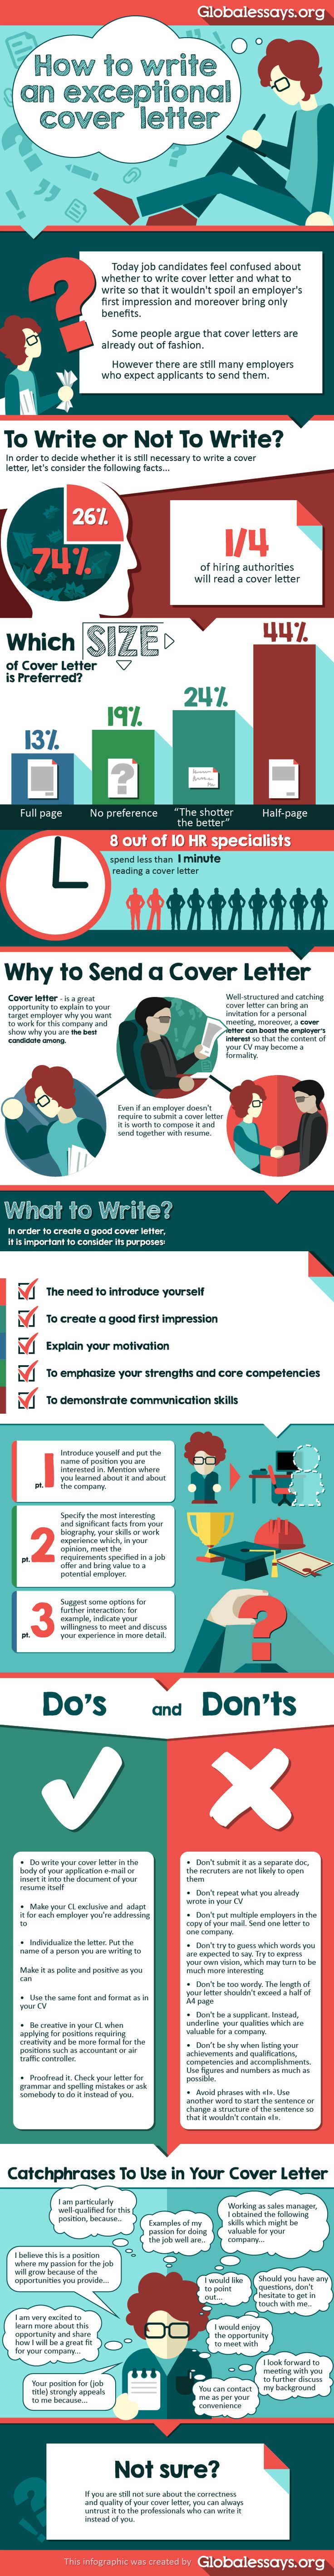 Best Cover Letter Tips Images On   Letter Templates